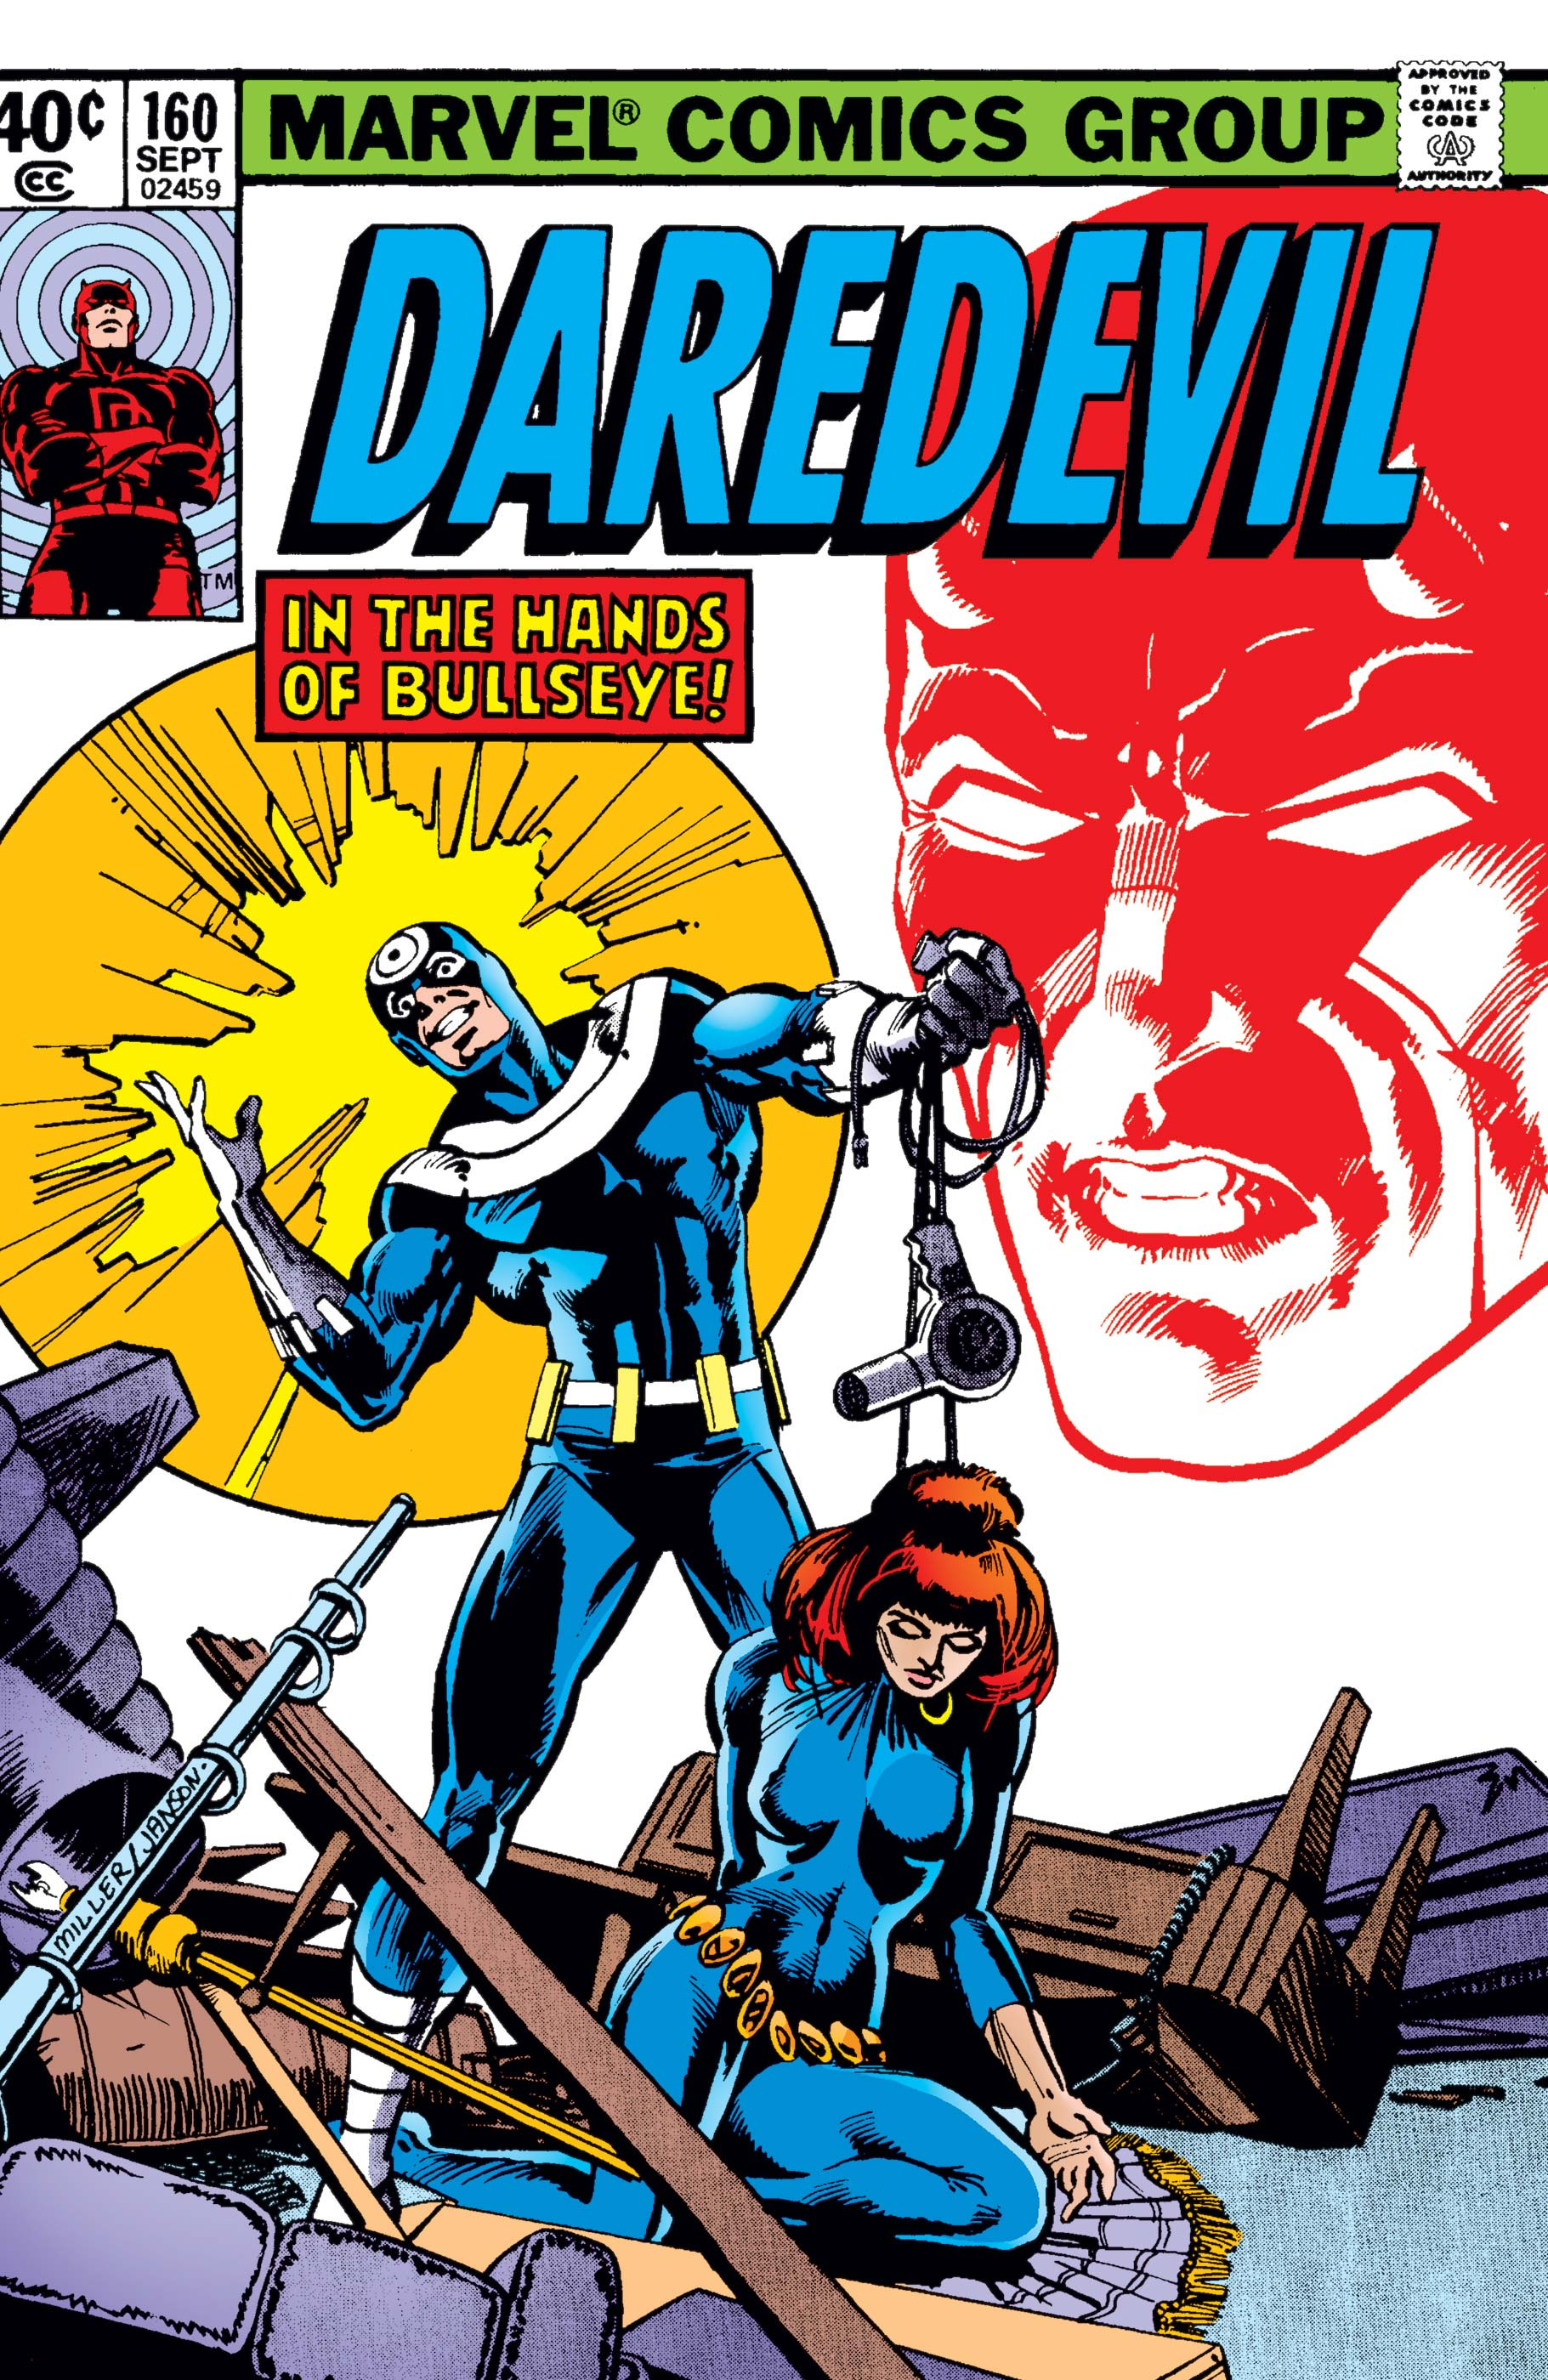 Daredevil Vol 1 160